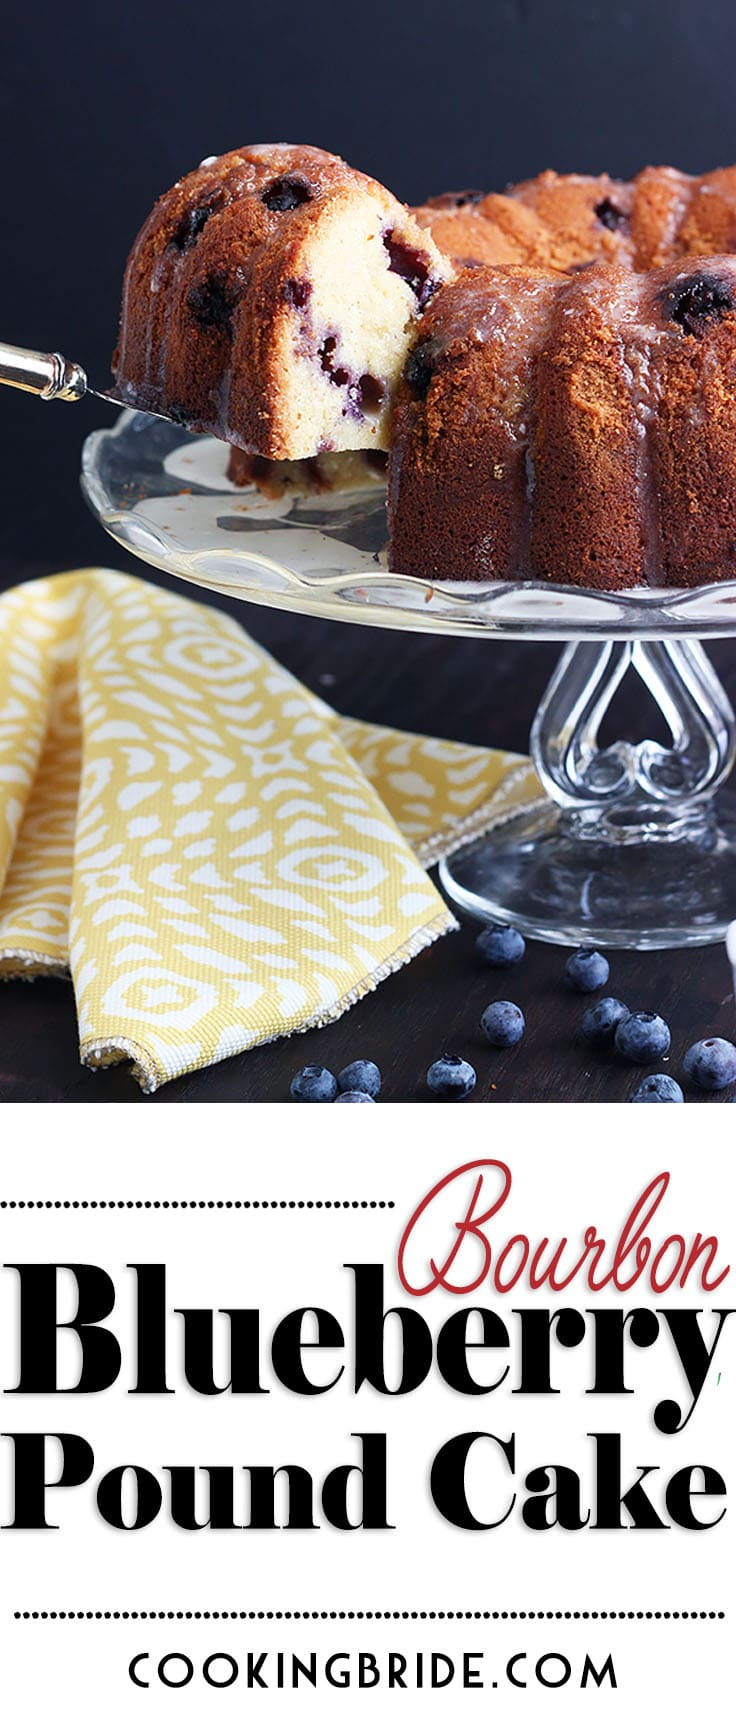 This yummy blueberry pound cake recipe gets its unique flavor from a splash of bourbon mixed right into the batter. Drizzle with sweet glaze or serve with vanilla ice cream.